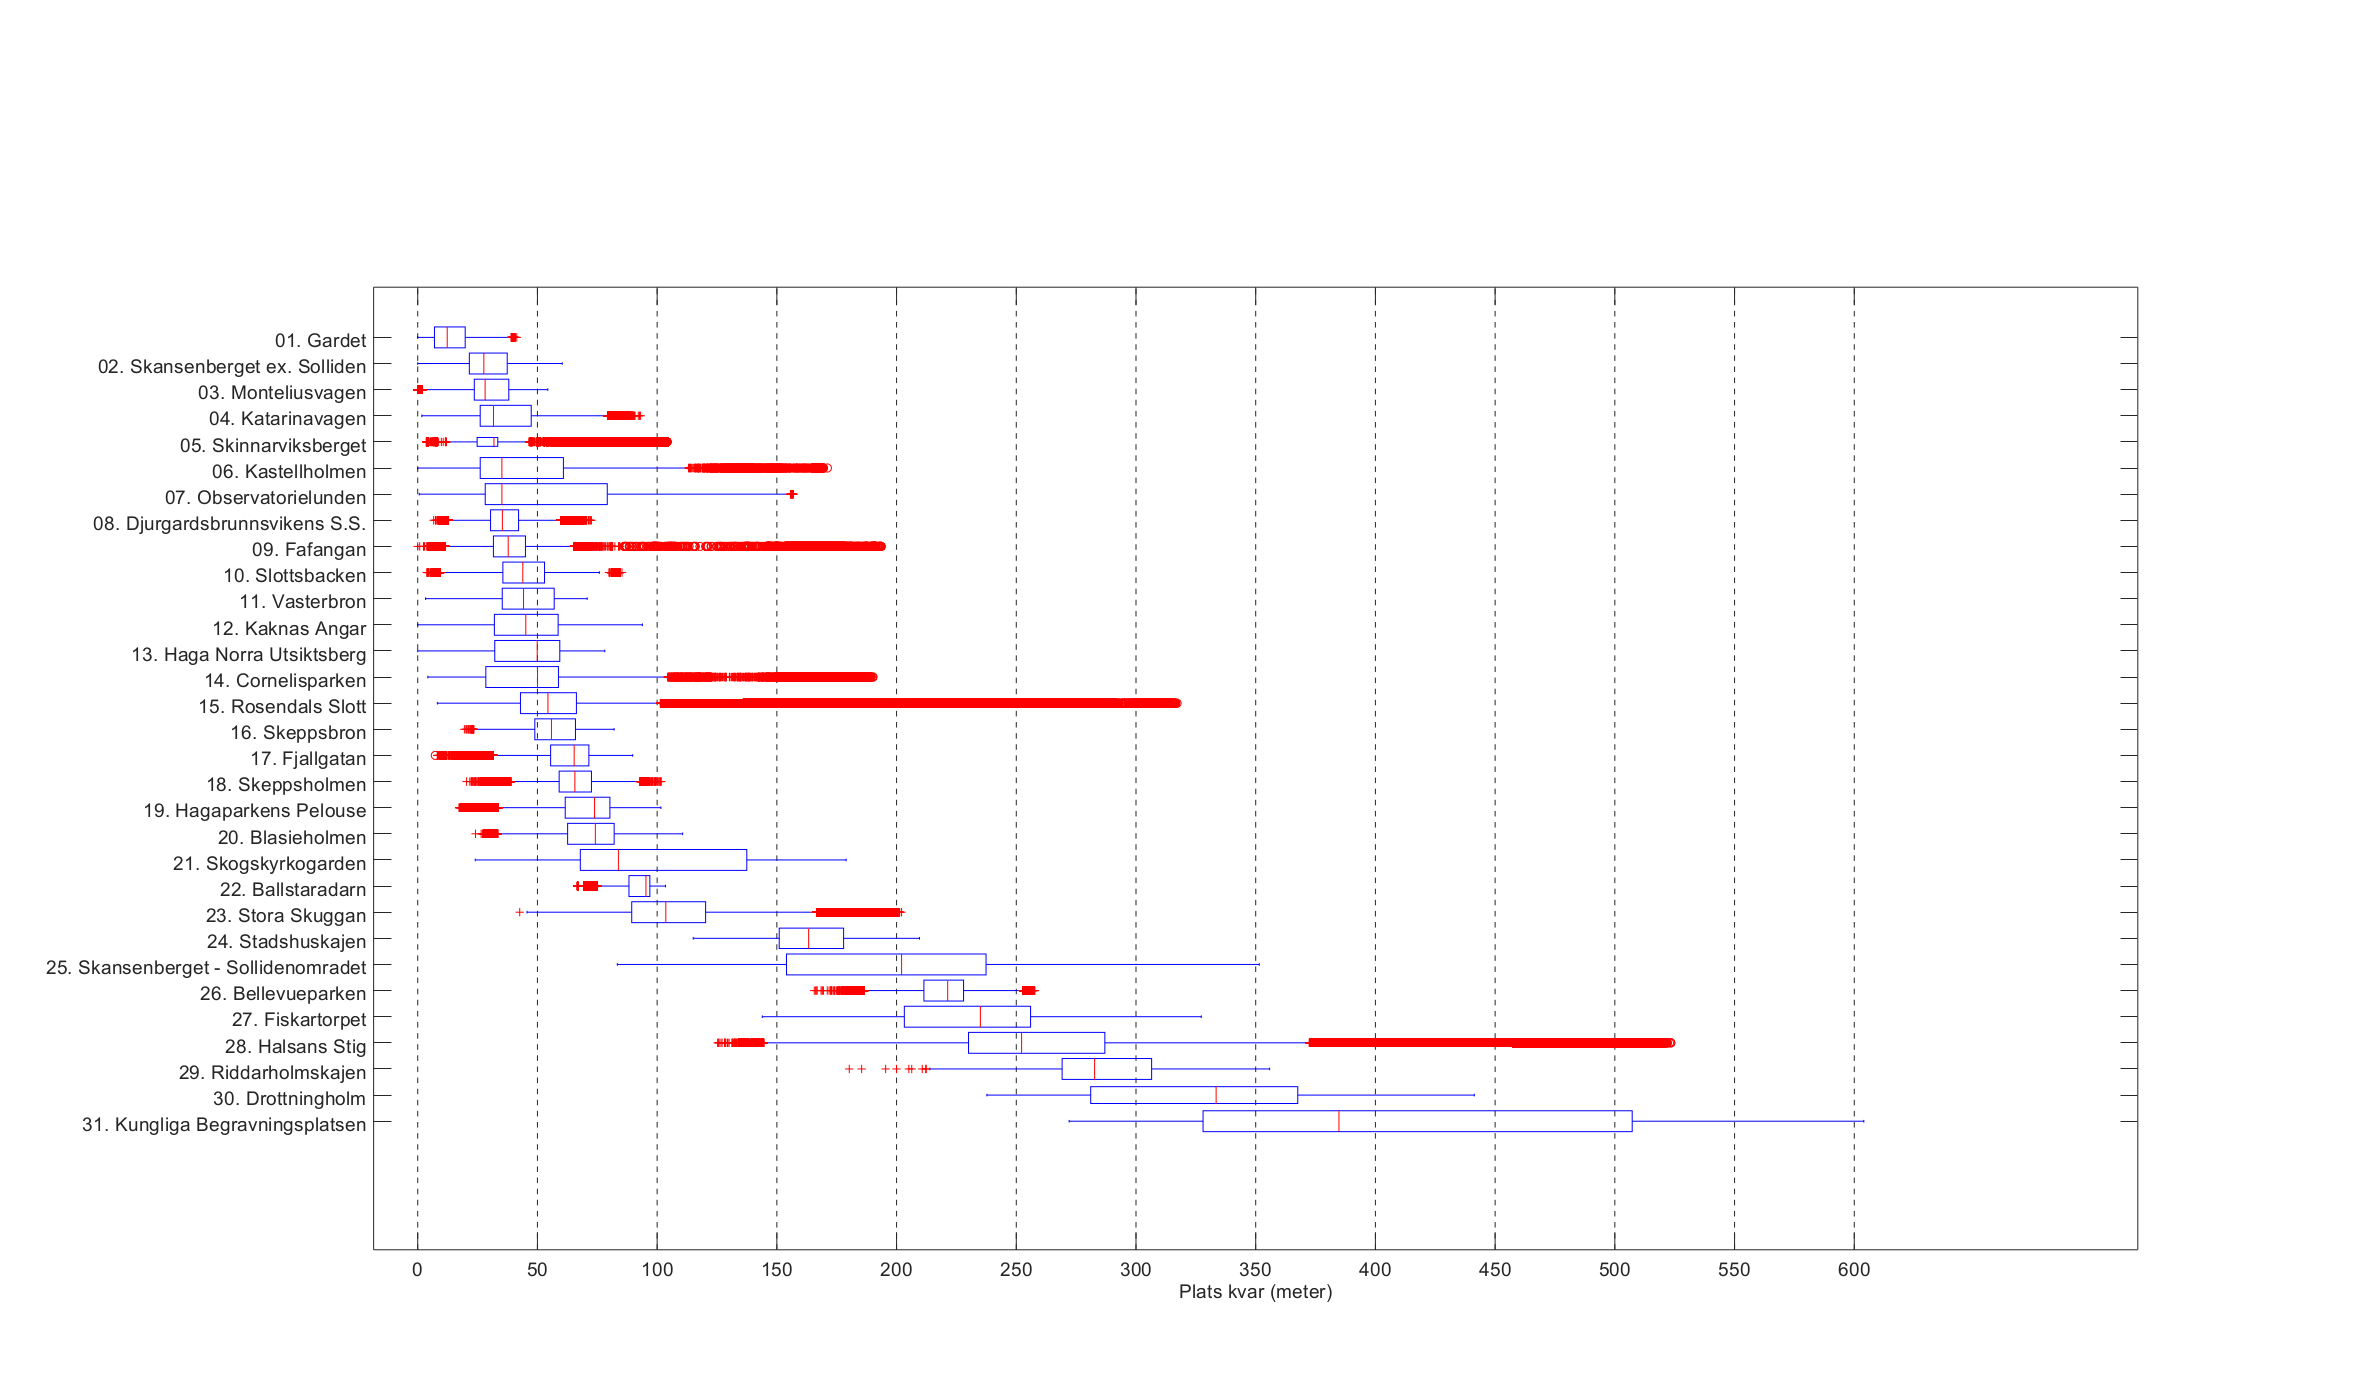 How To Handle Outliers In This Octave Boxplot For Improved Readability